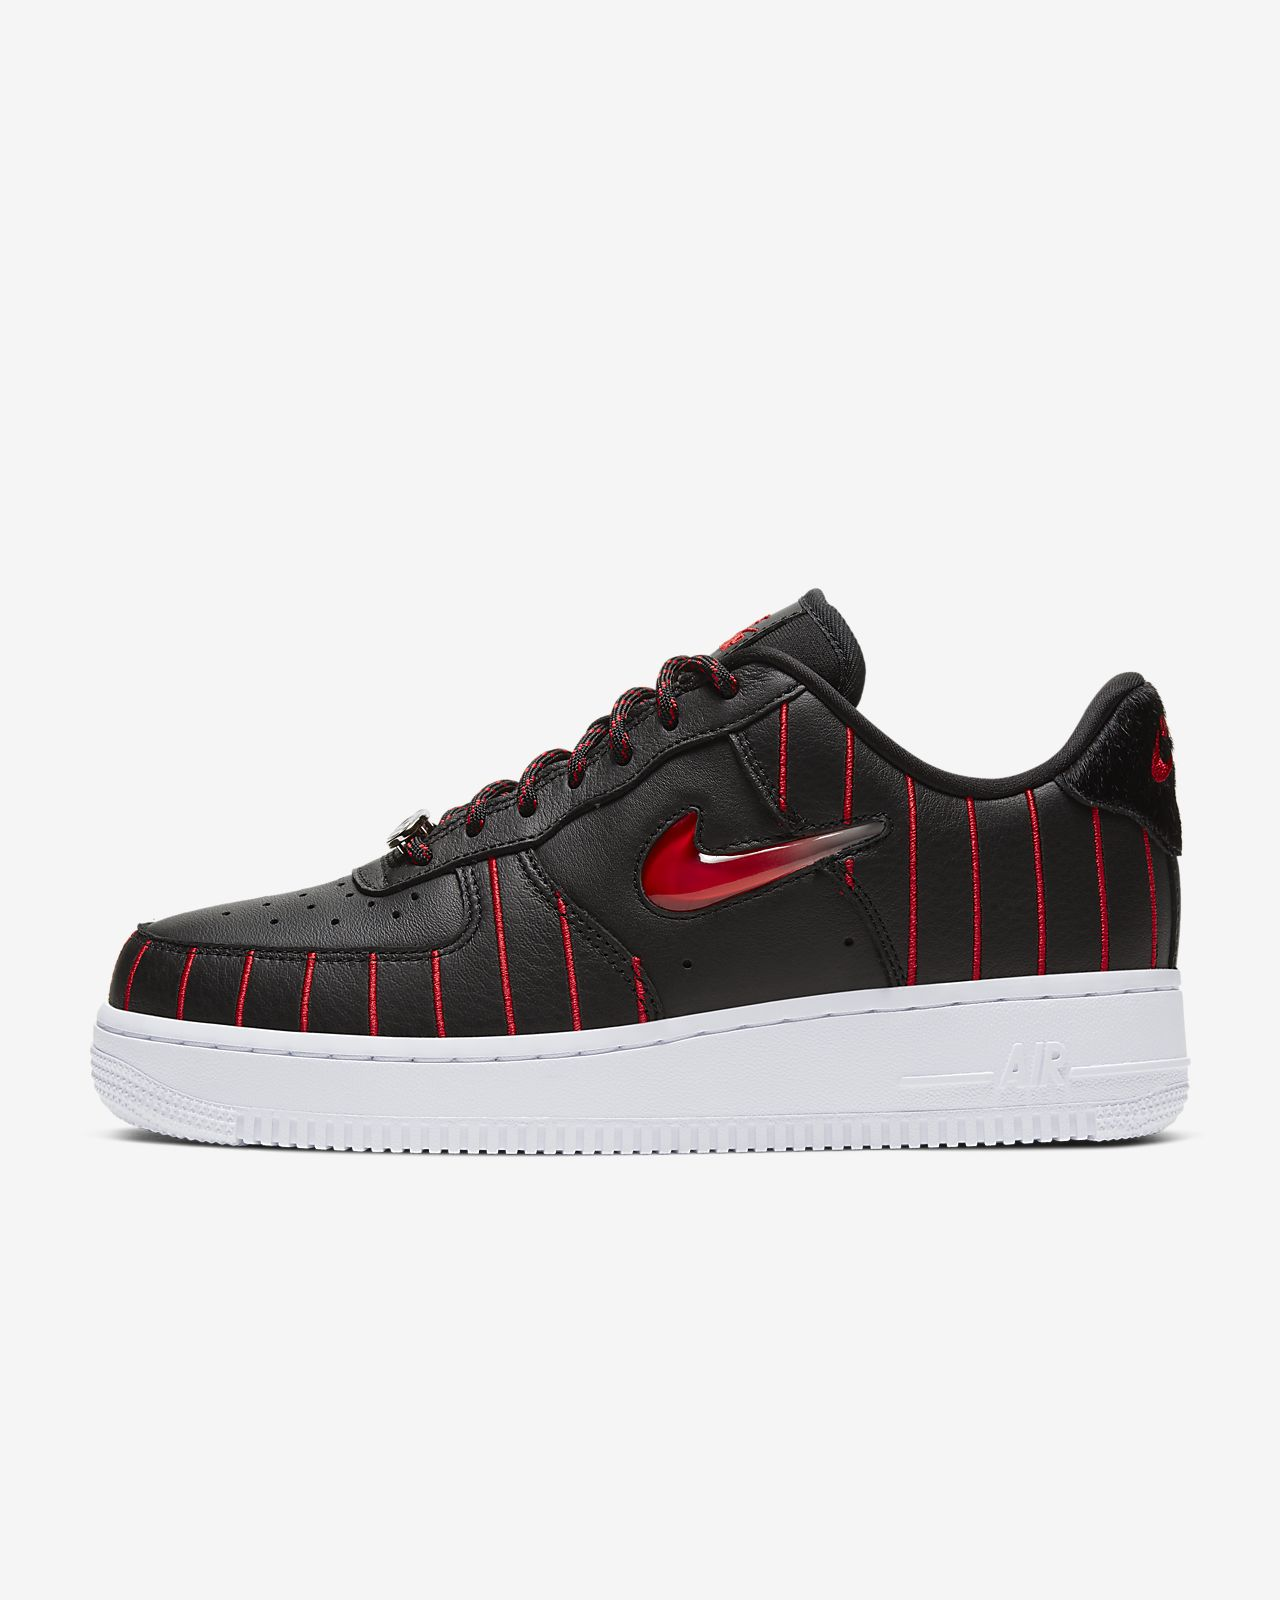 Nike Air Force 1 Jewel Shoe